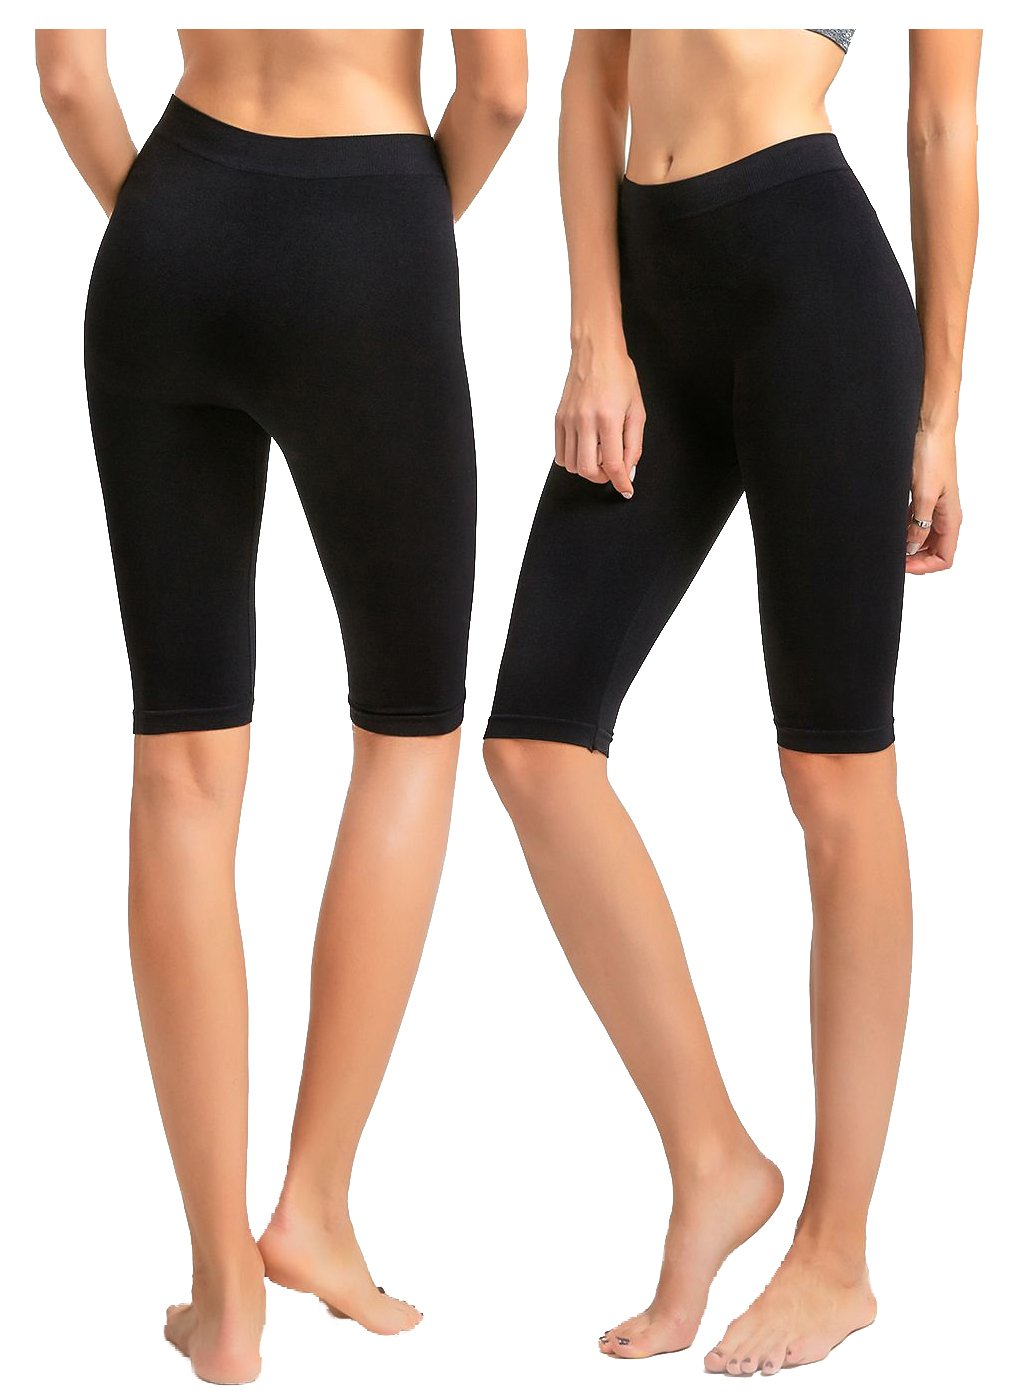 2 Pack Women's Seamless Stretch Yoga Exercise Shorts Black 19''